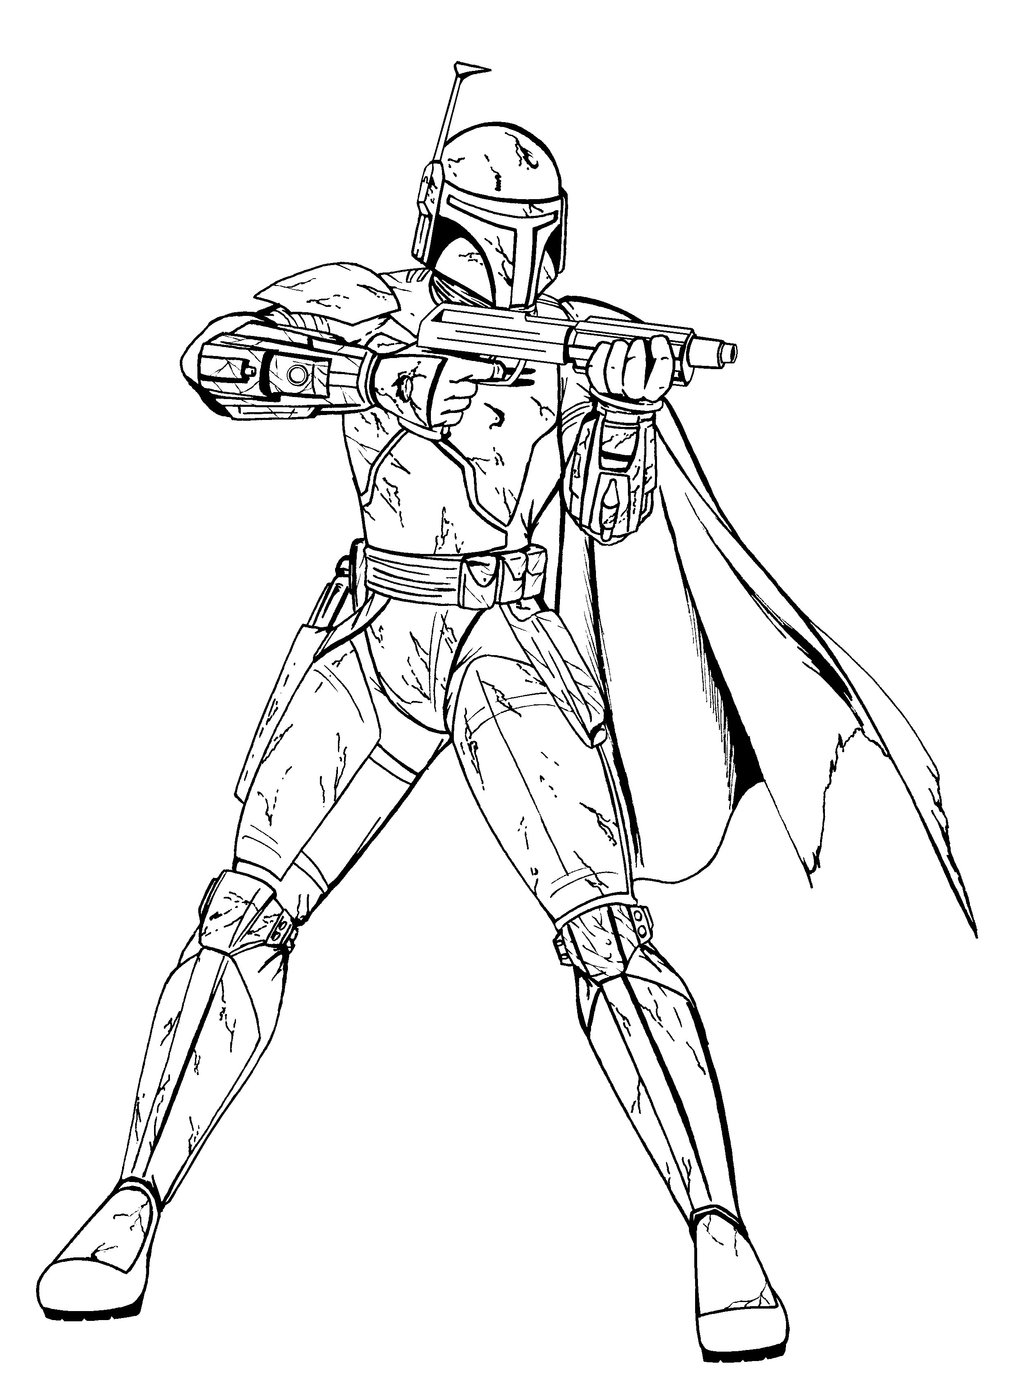 star wars colouring for kids star wars for children star wars kids coloring pages star for kids colouring wars